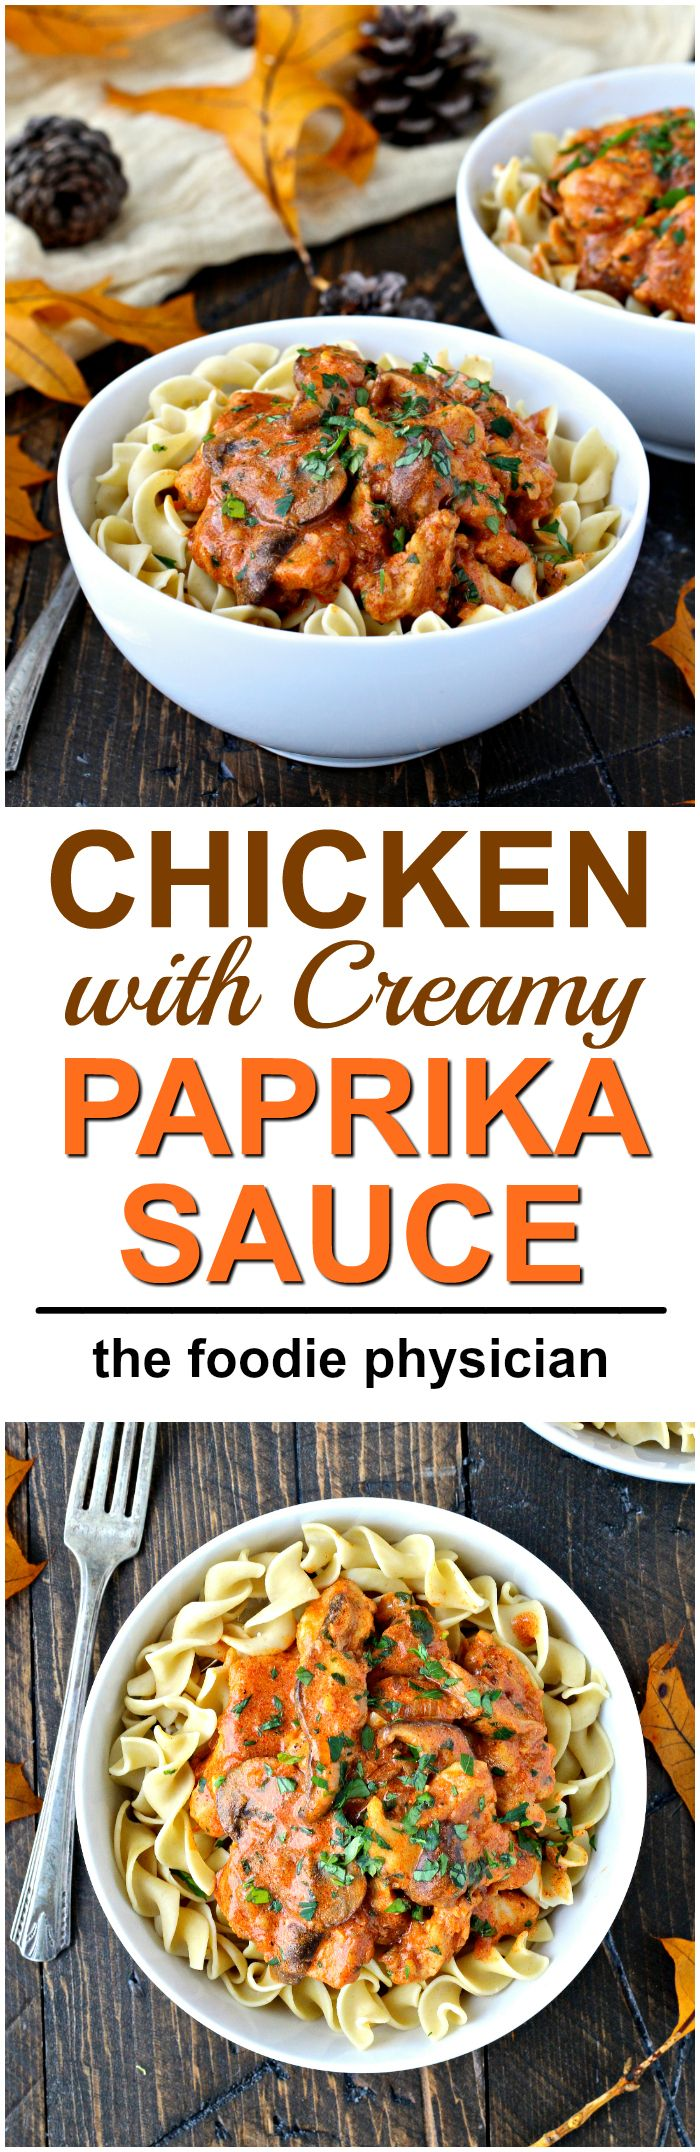 Chicken with Creamy Paprika Sauce- a hearty & delicious budget-friendly dish!   @foodiephysician